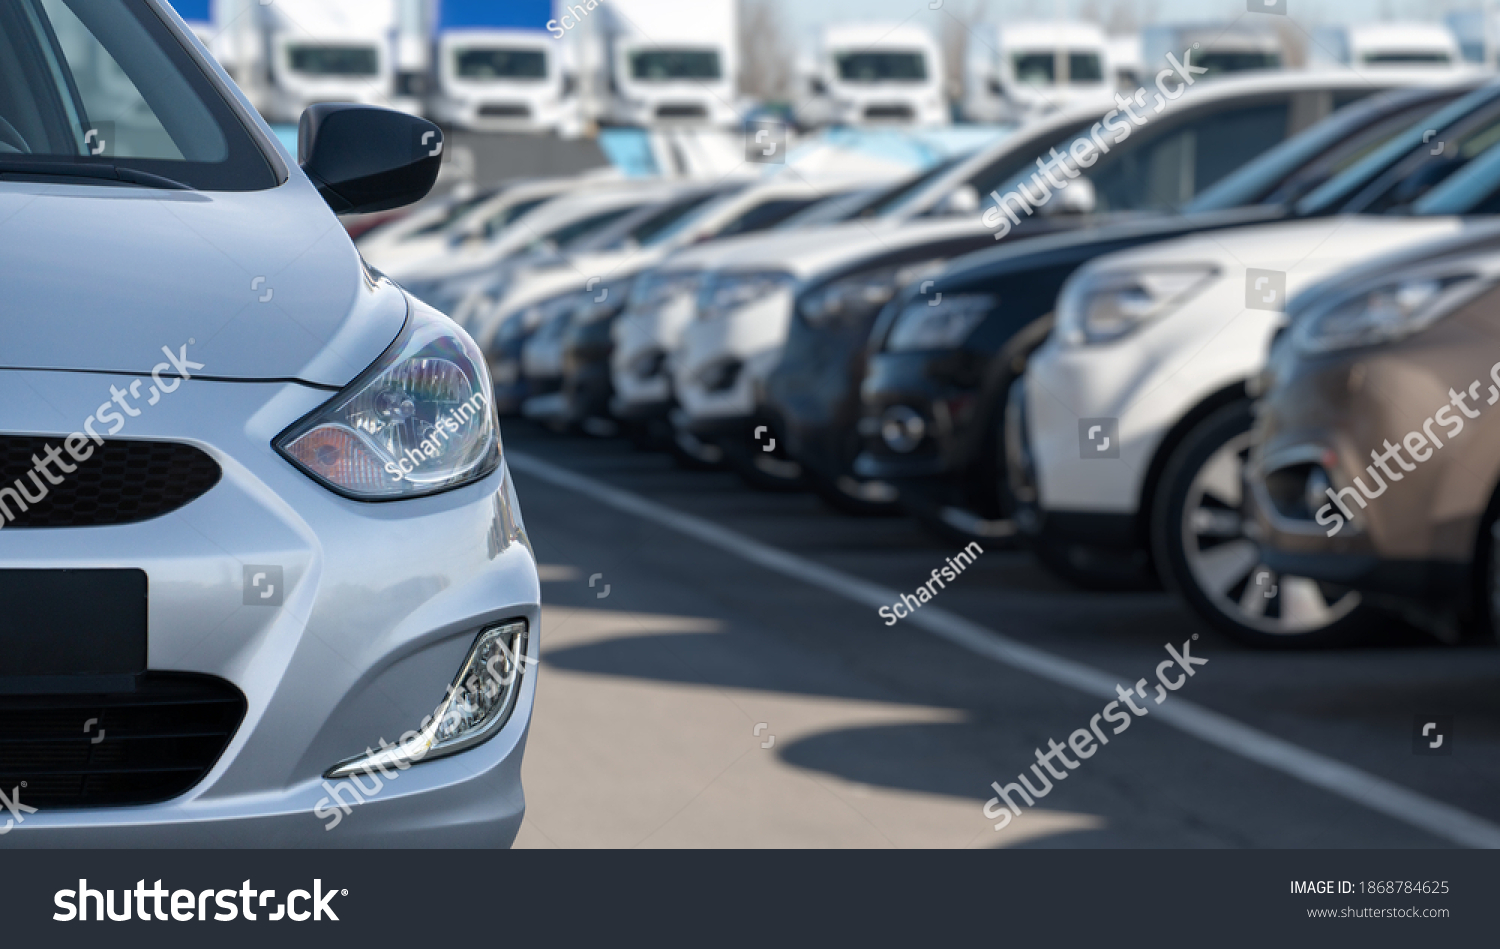 Cars in a rows. Used car sales #1868784625